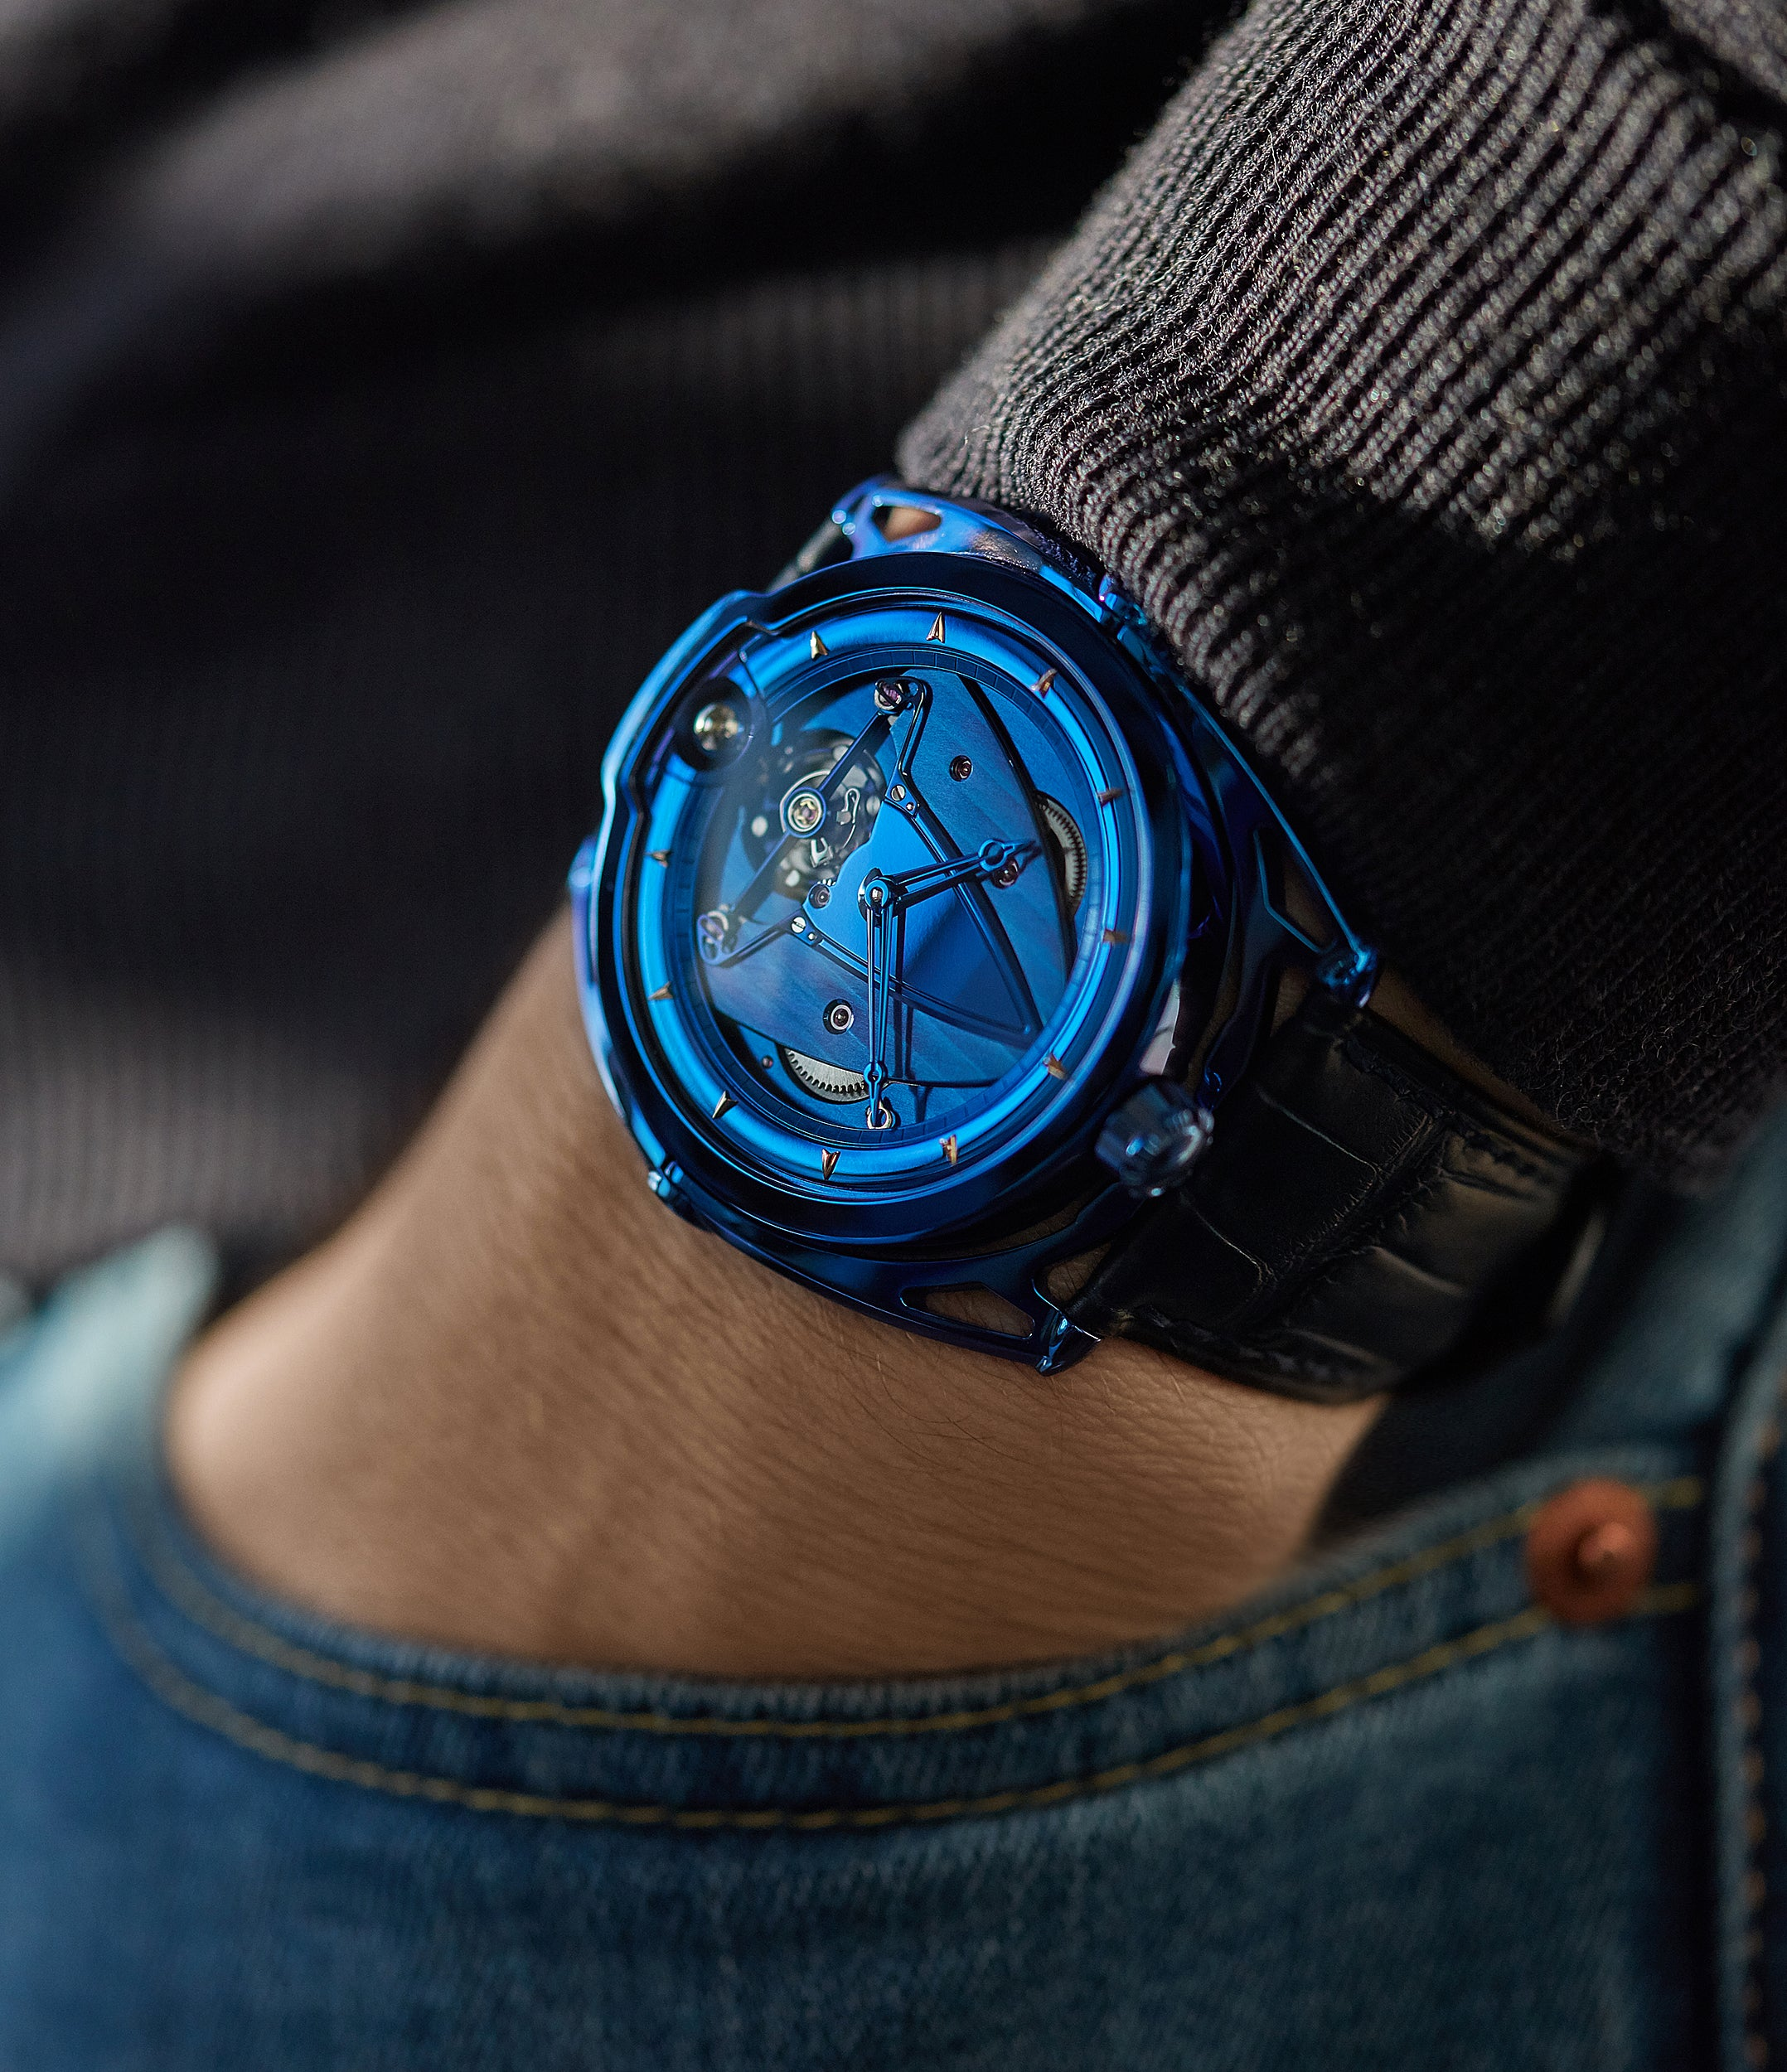 men's luxury blue watch De Bethune DB28 Kind of Blue titanium rare limited edition independent watchmaker for sale at A Collected Man London UK specilaist of rare watches